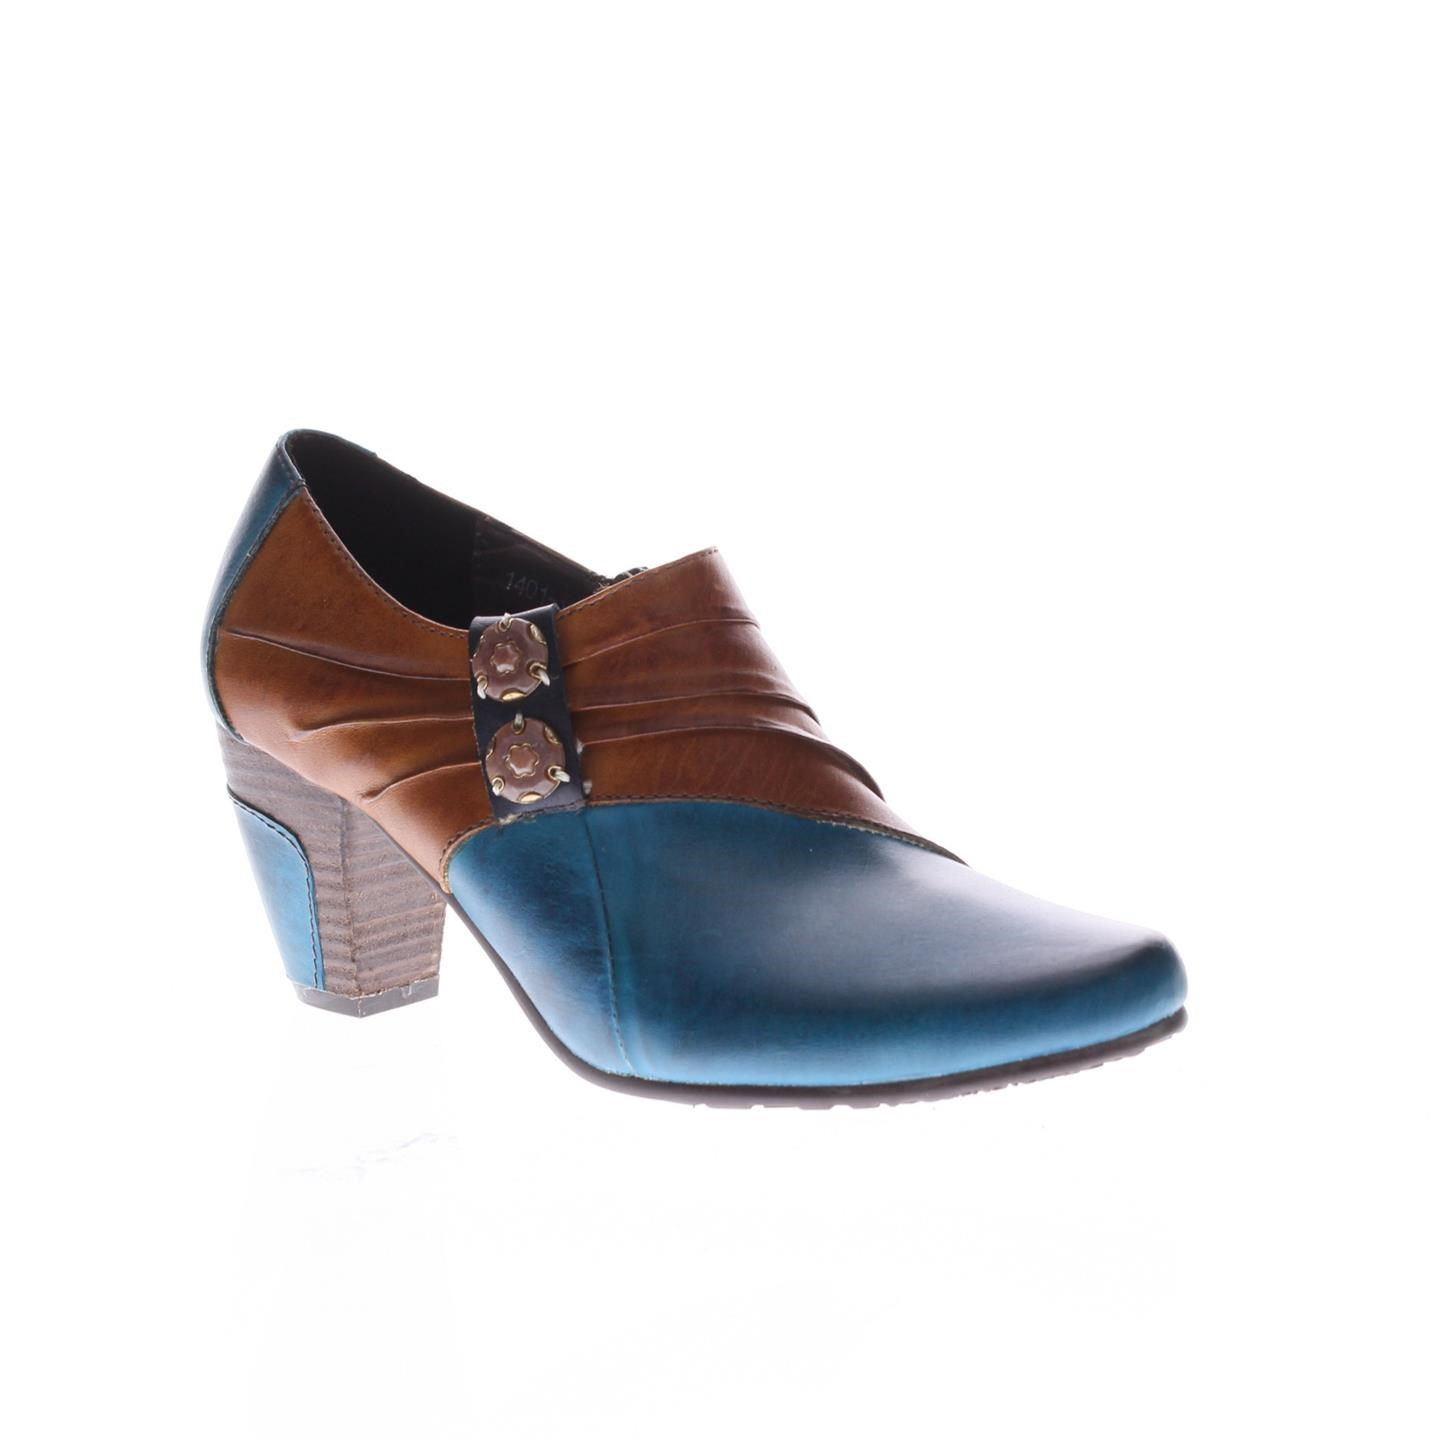 L'Artiste Joella By Spring Step Turquoise Leather Shoes 36 EU   6 US Women by Spring Step